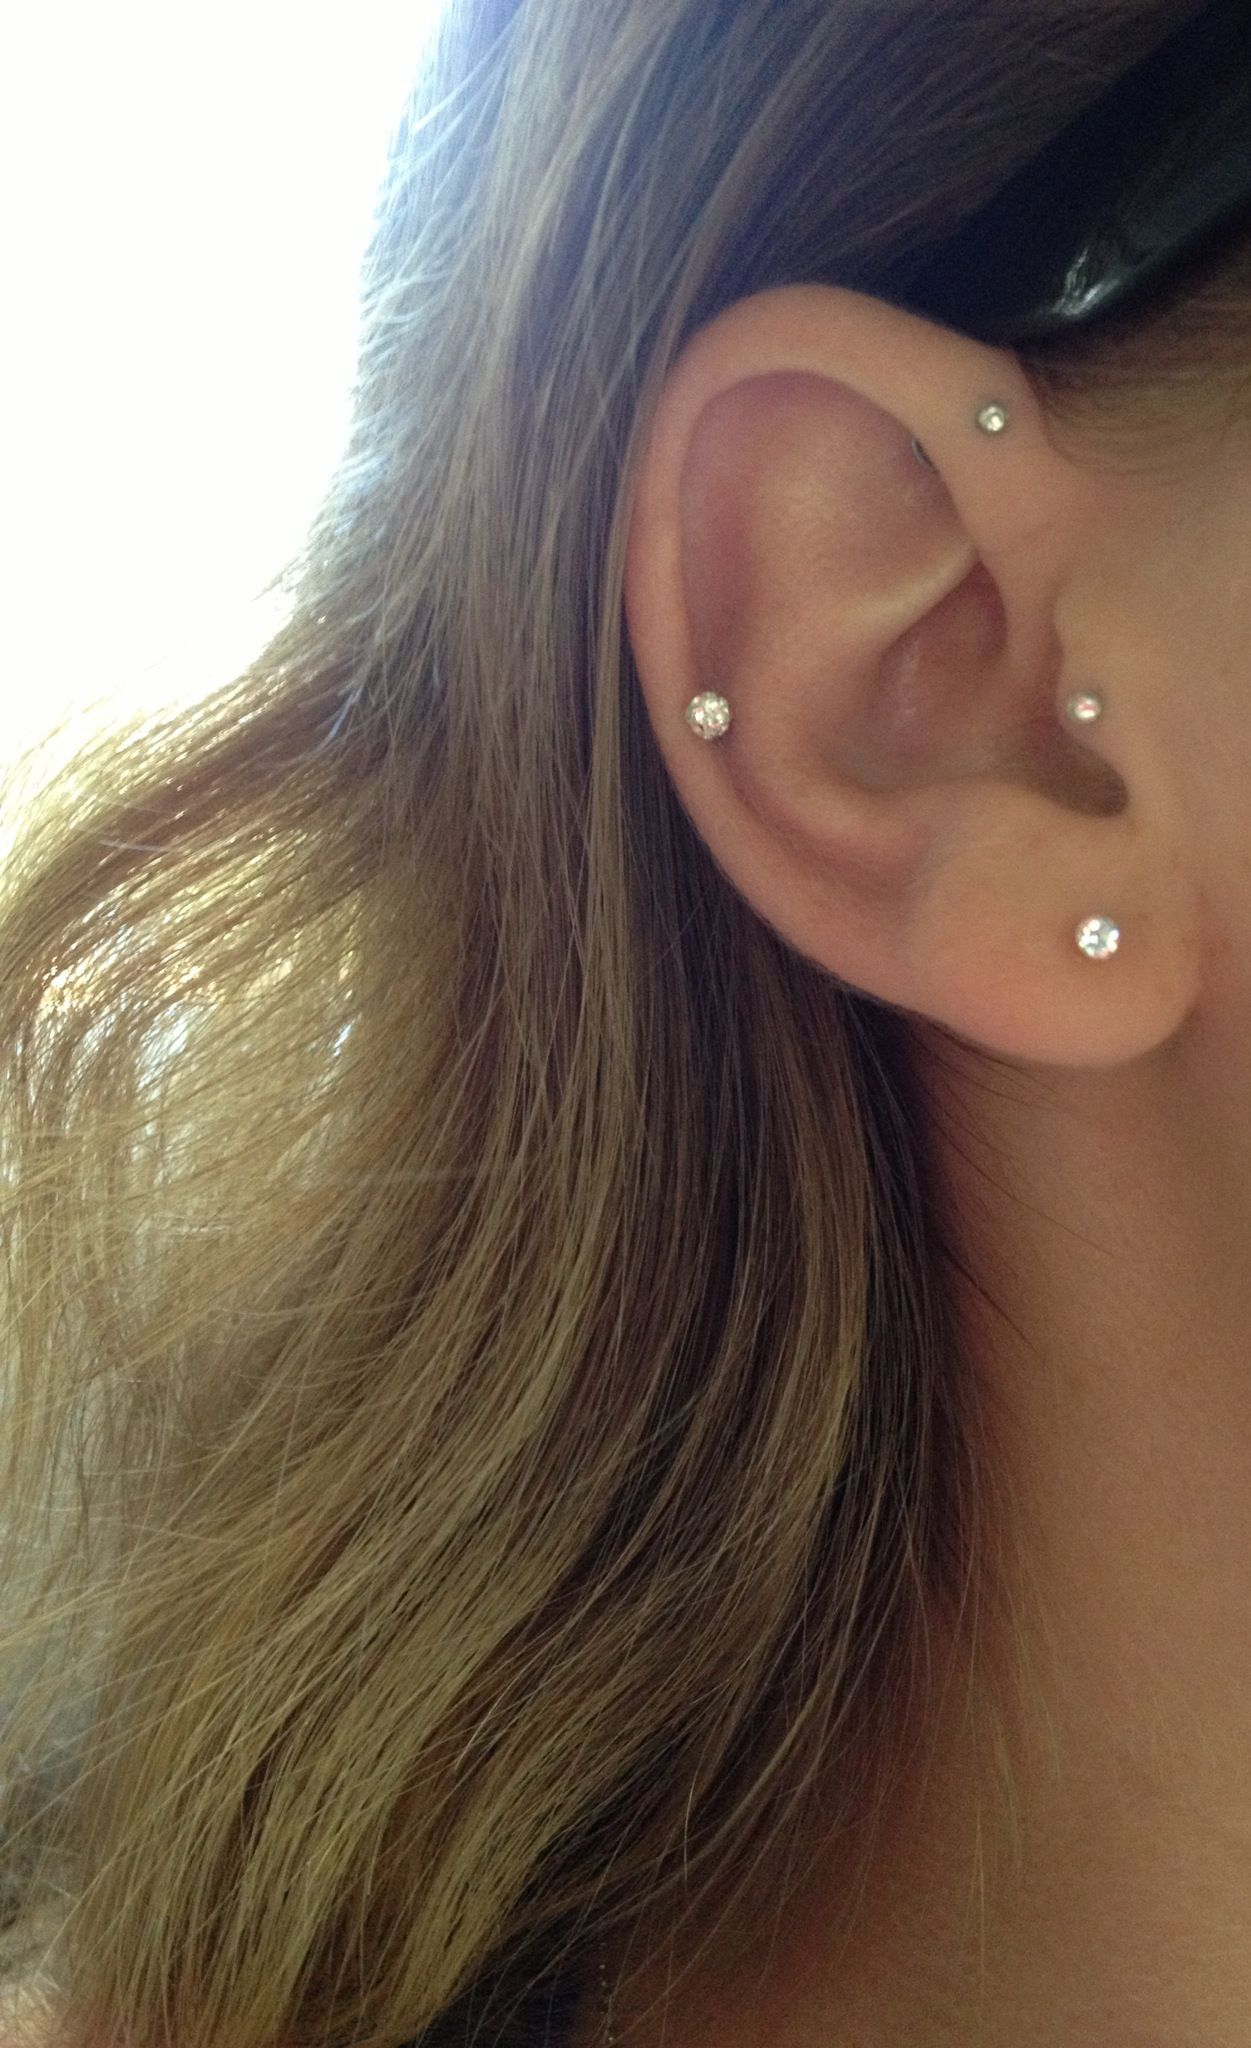 unique and beautiful ear piercing ideas, from minimalist studs to extravagant jewels Forward helix, tragus, and helix. literally all the piercings I looked at getting... but not all of them together!Forward helix, tragus, and helix. literally all the piercings I looked at getting... but not all of them together!